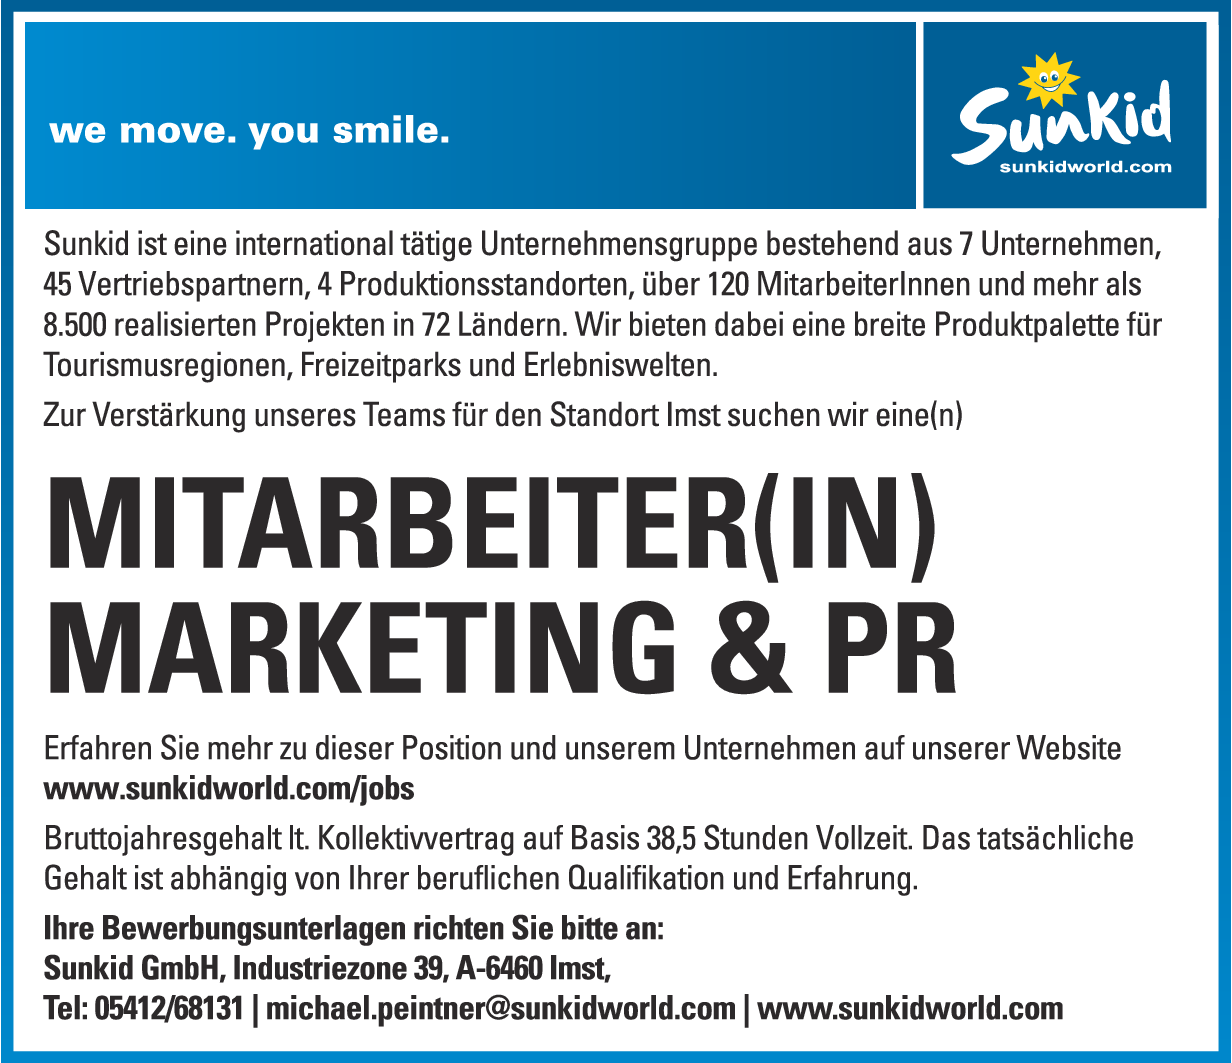 MITARBEITER(IN) MARKETING & PR